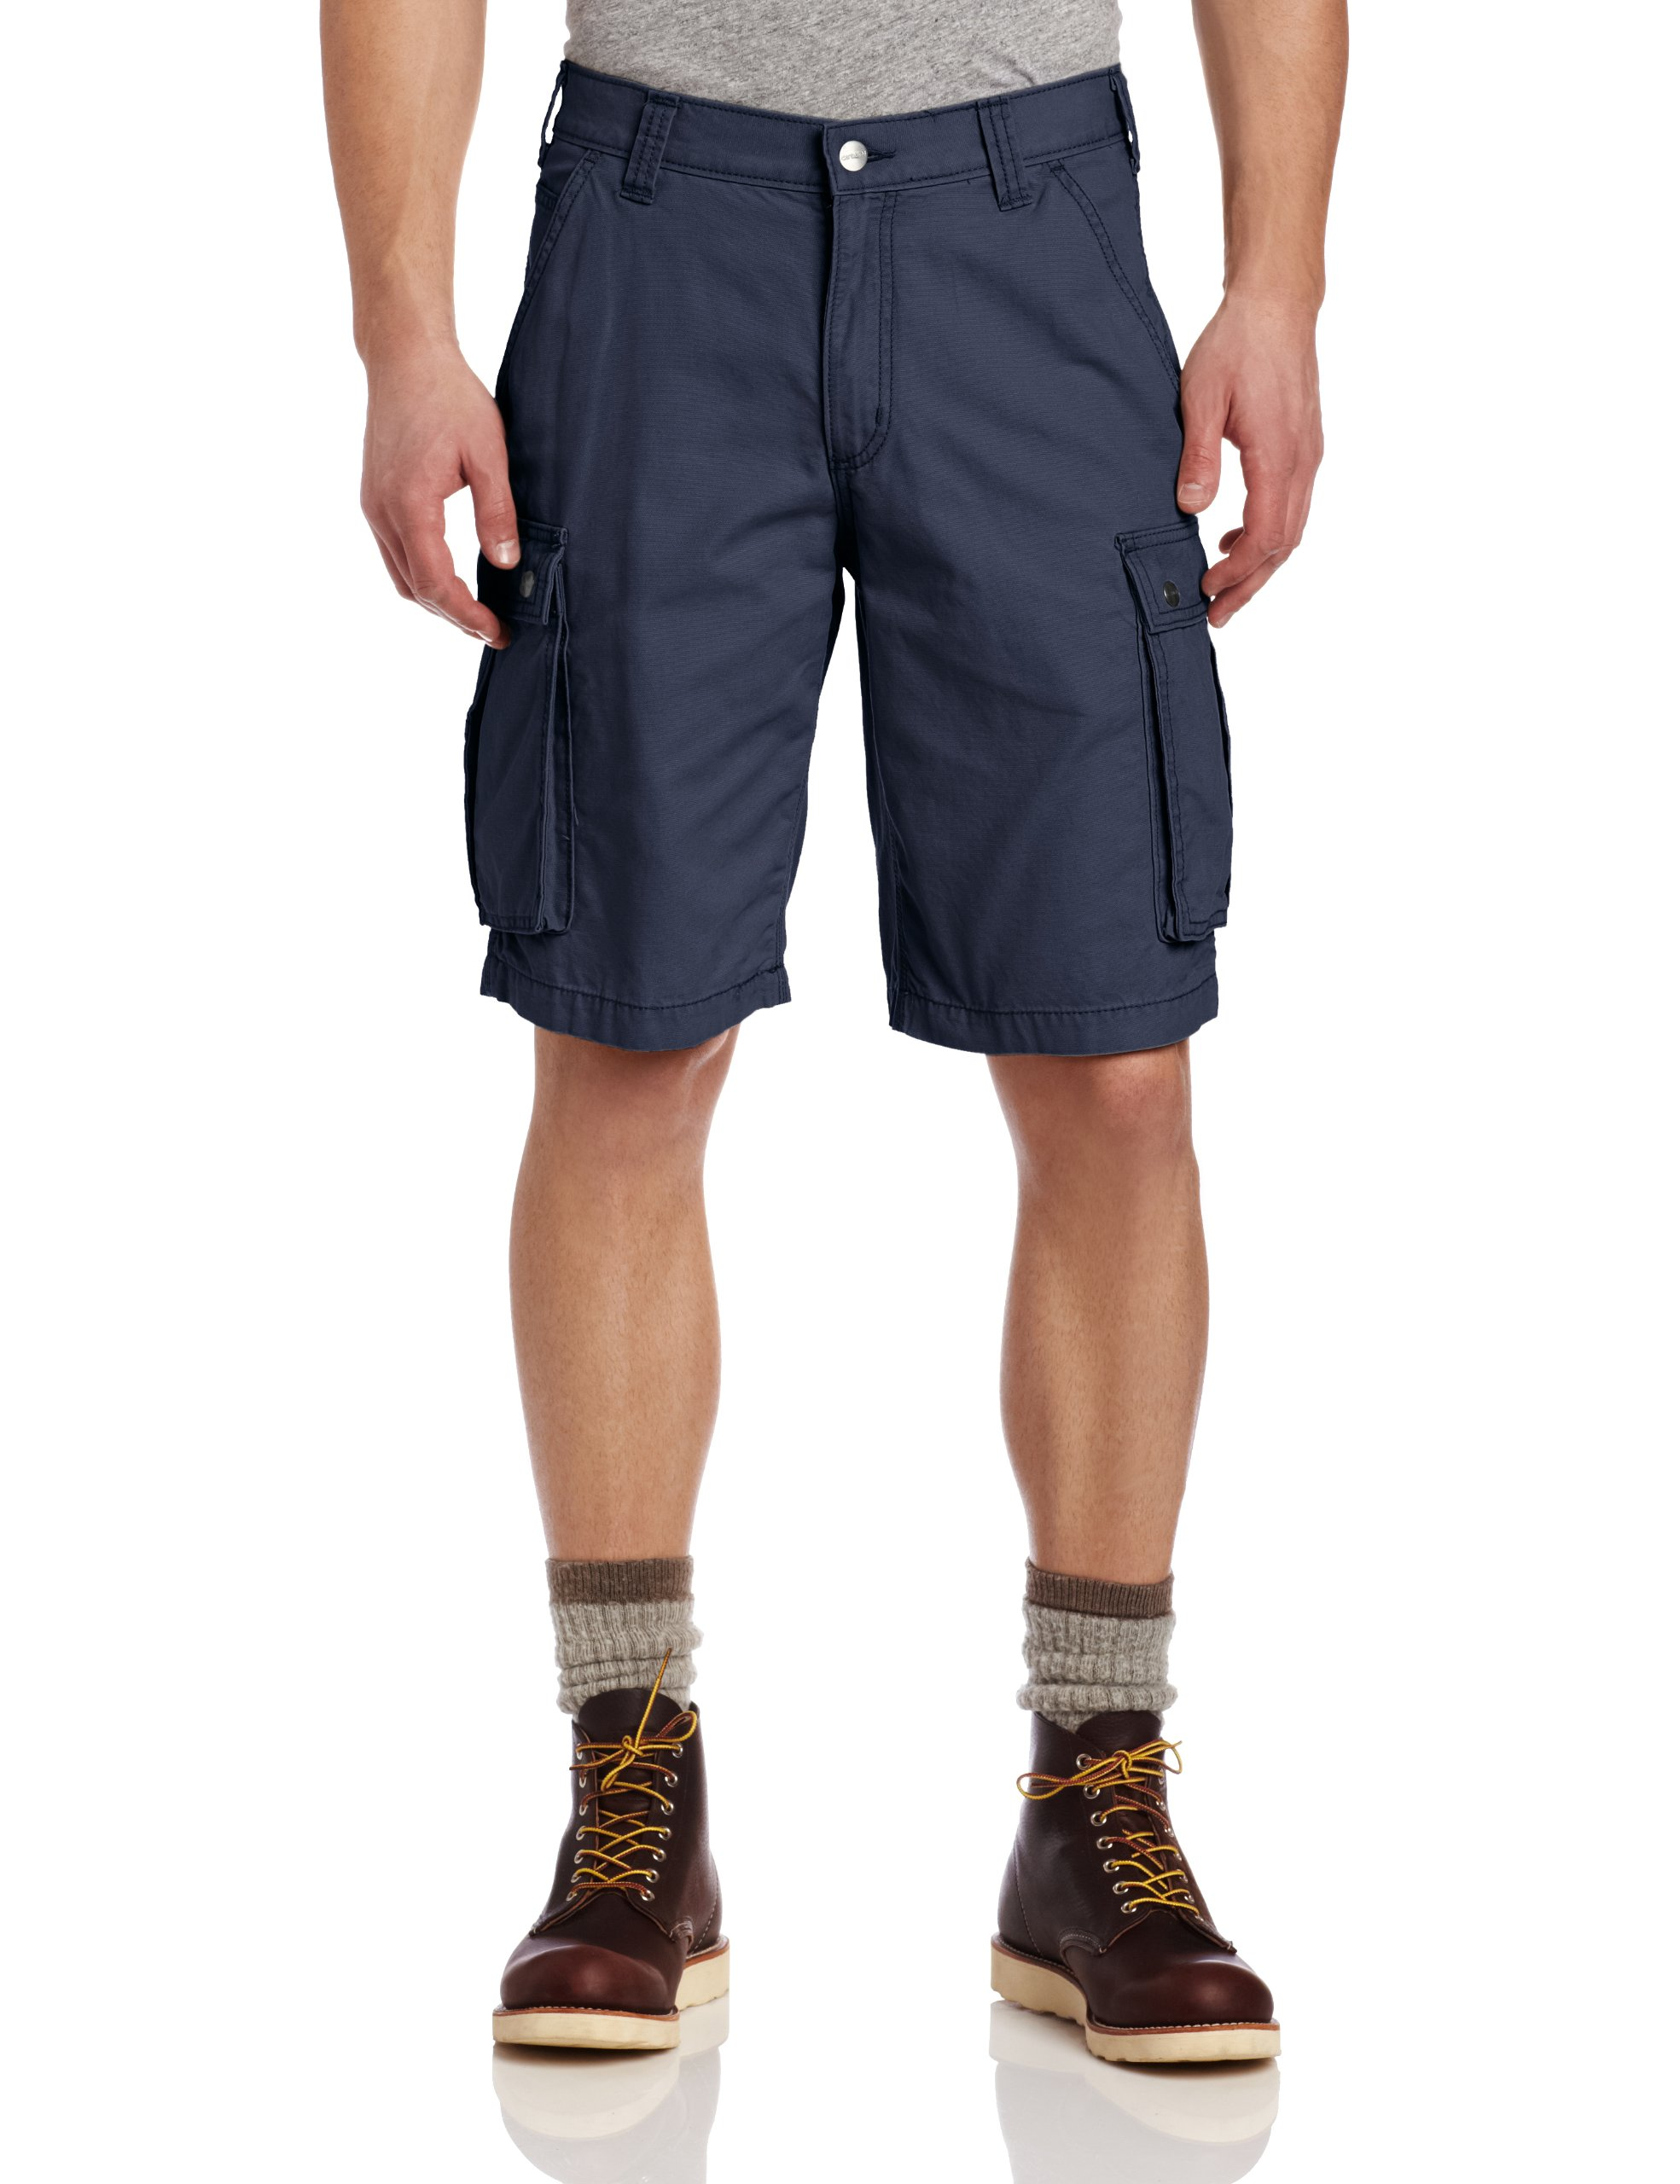 Carhartt Men's Rugged Cargo Short Relaxed Fit,Bluestone (Closeout),38